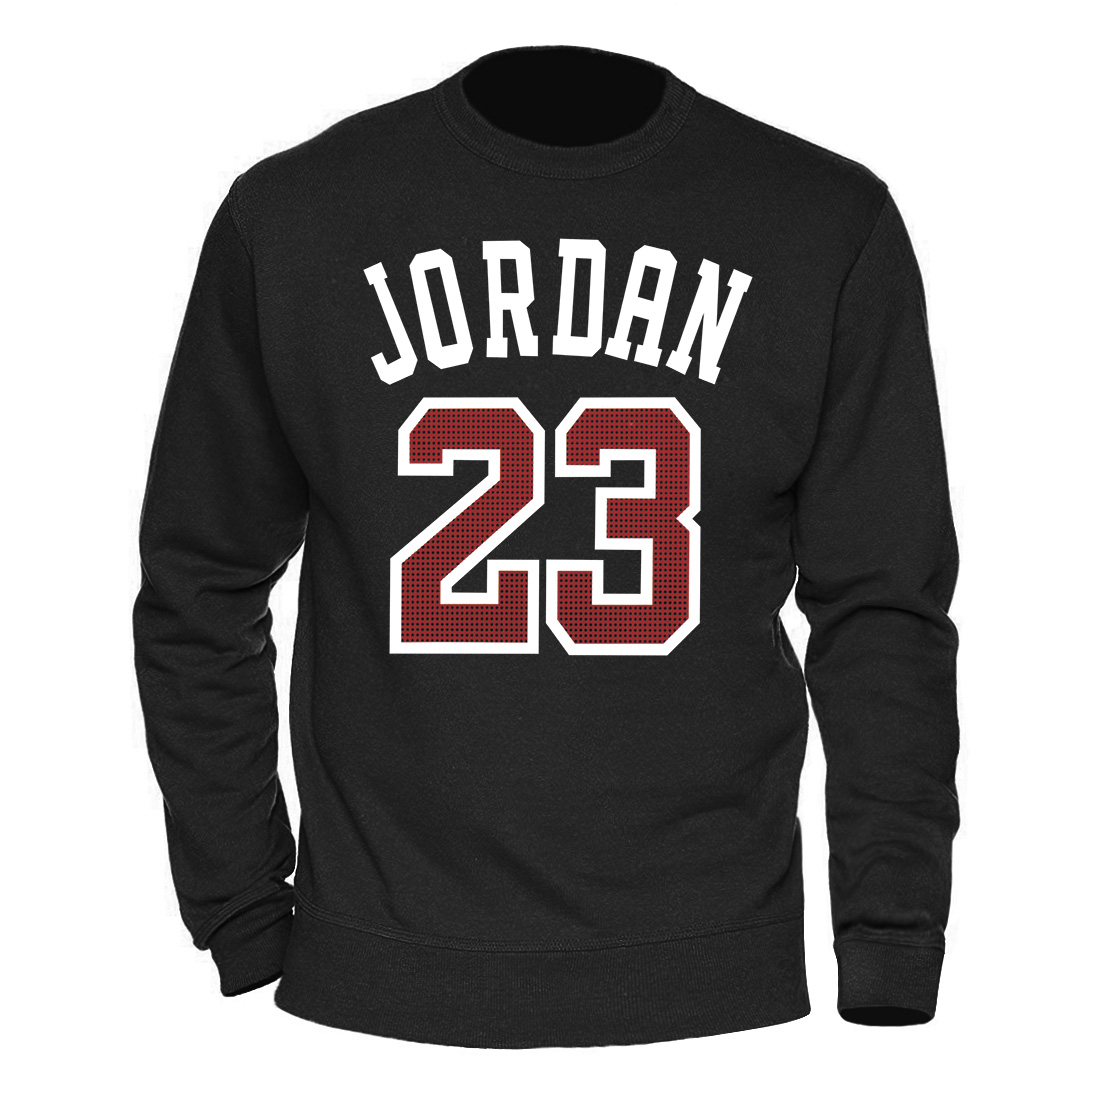 Fashion Brand NO. 23 Letter Print Black Color Mens Sweatshirt Men Novelty Hoodies Pullover 2020 New Male Clothes